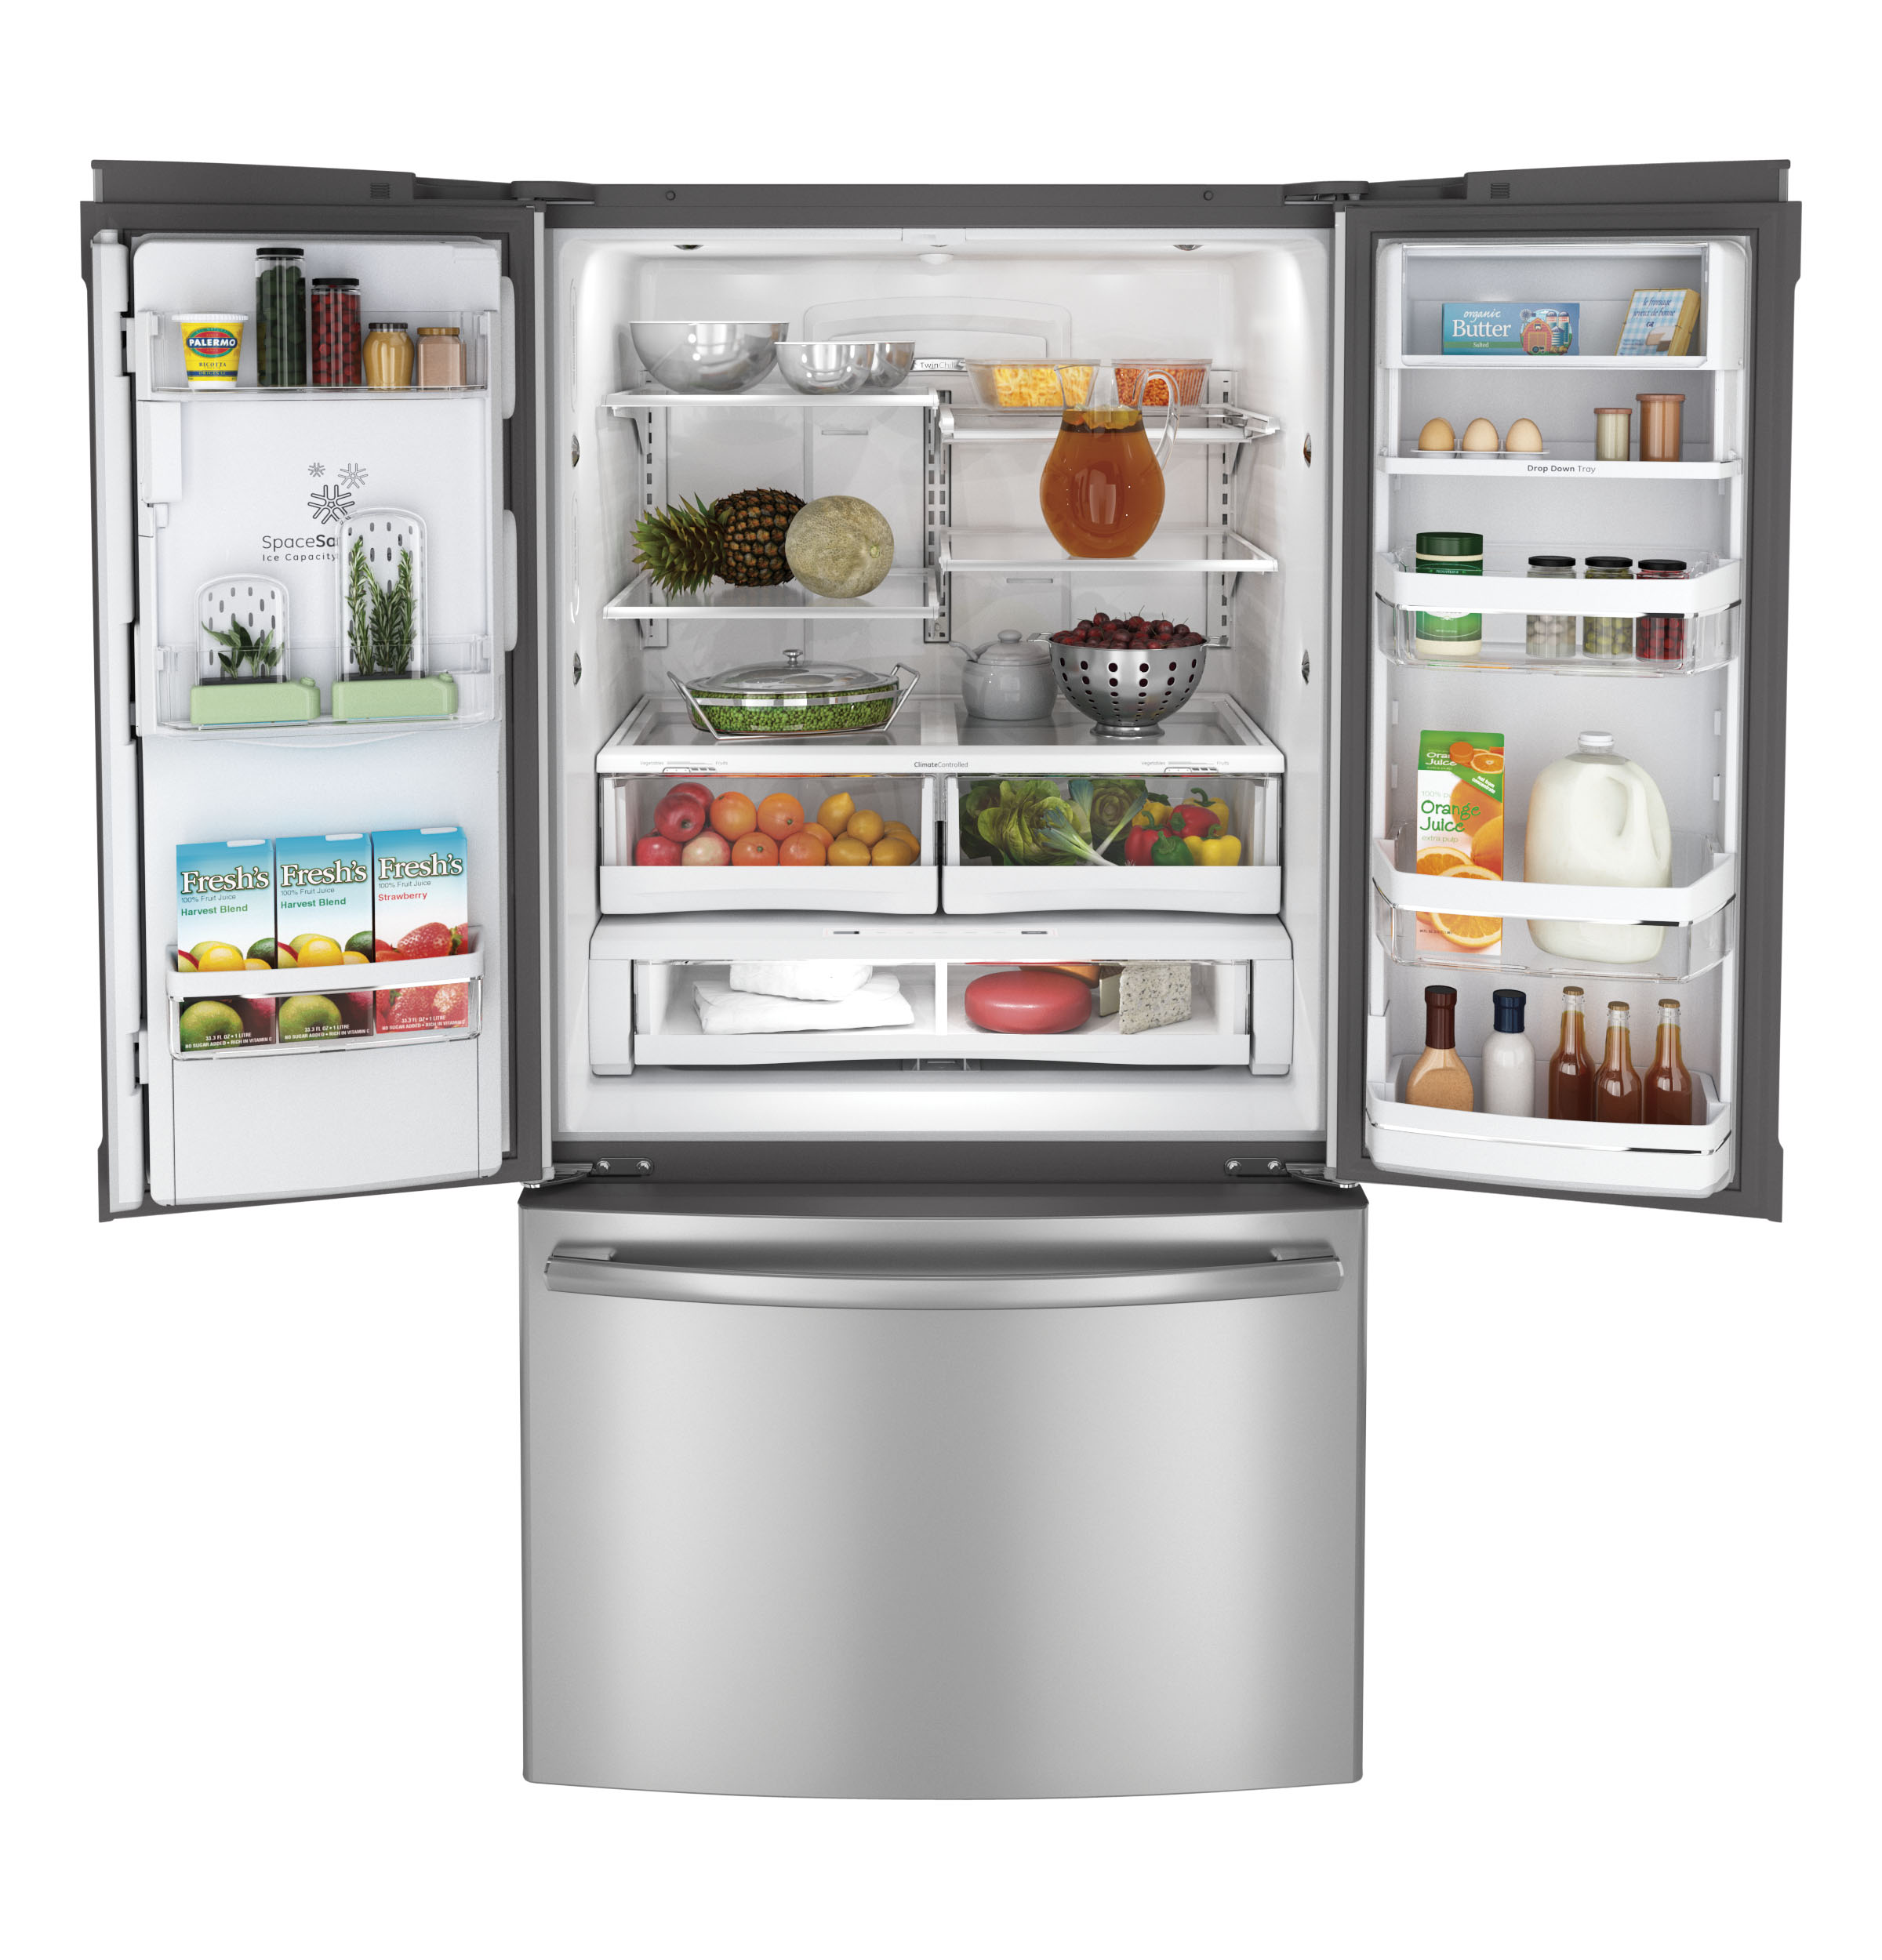 has of been unit crt elegant glass refrigerator air this turbo display countertop awesome ines discontinued merchandiser style diamond